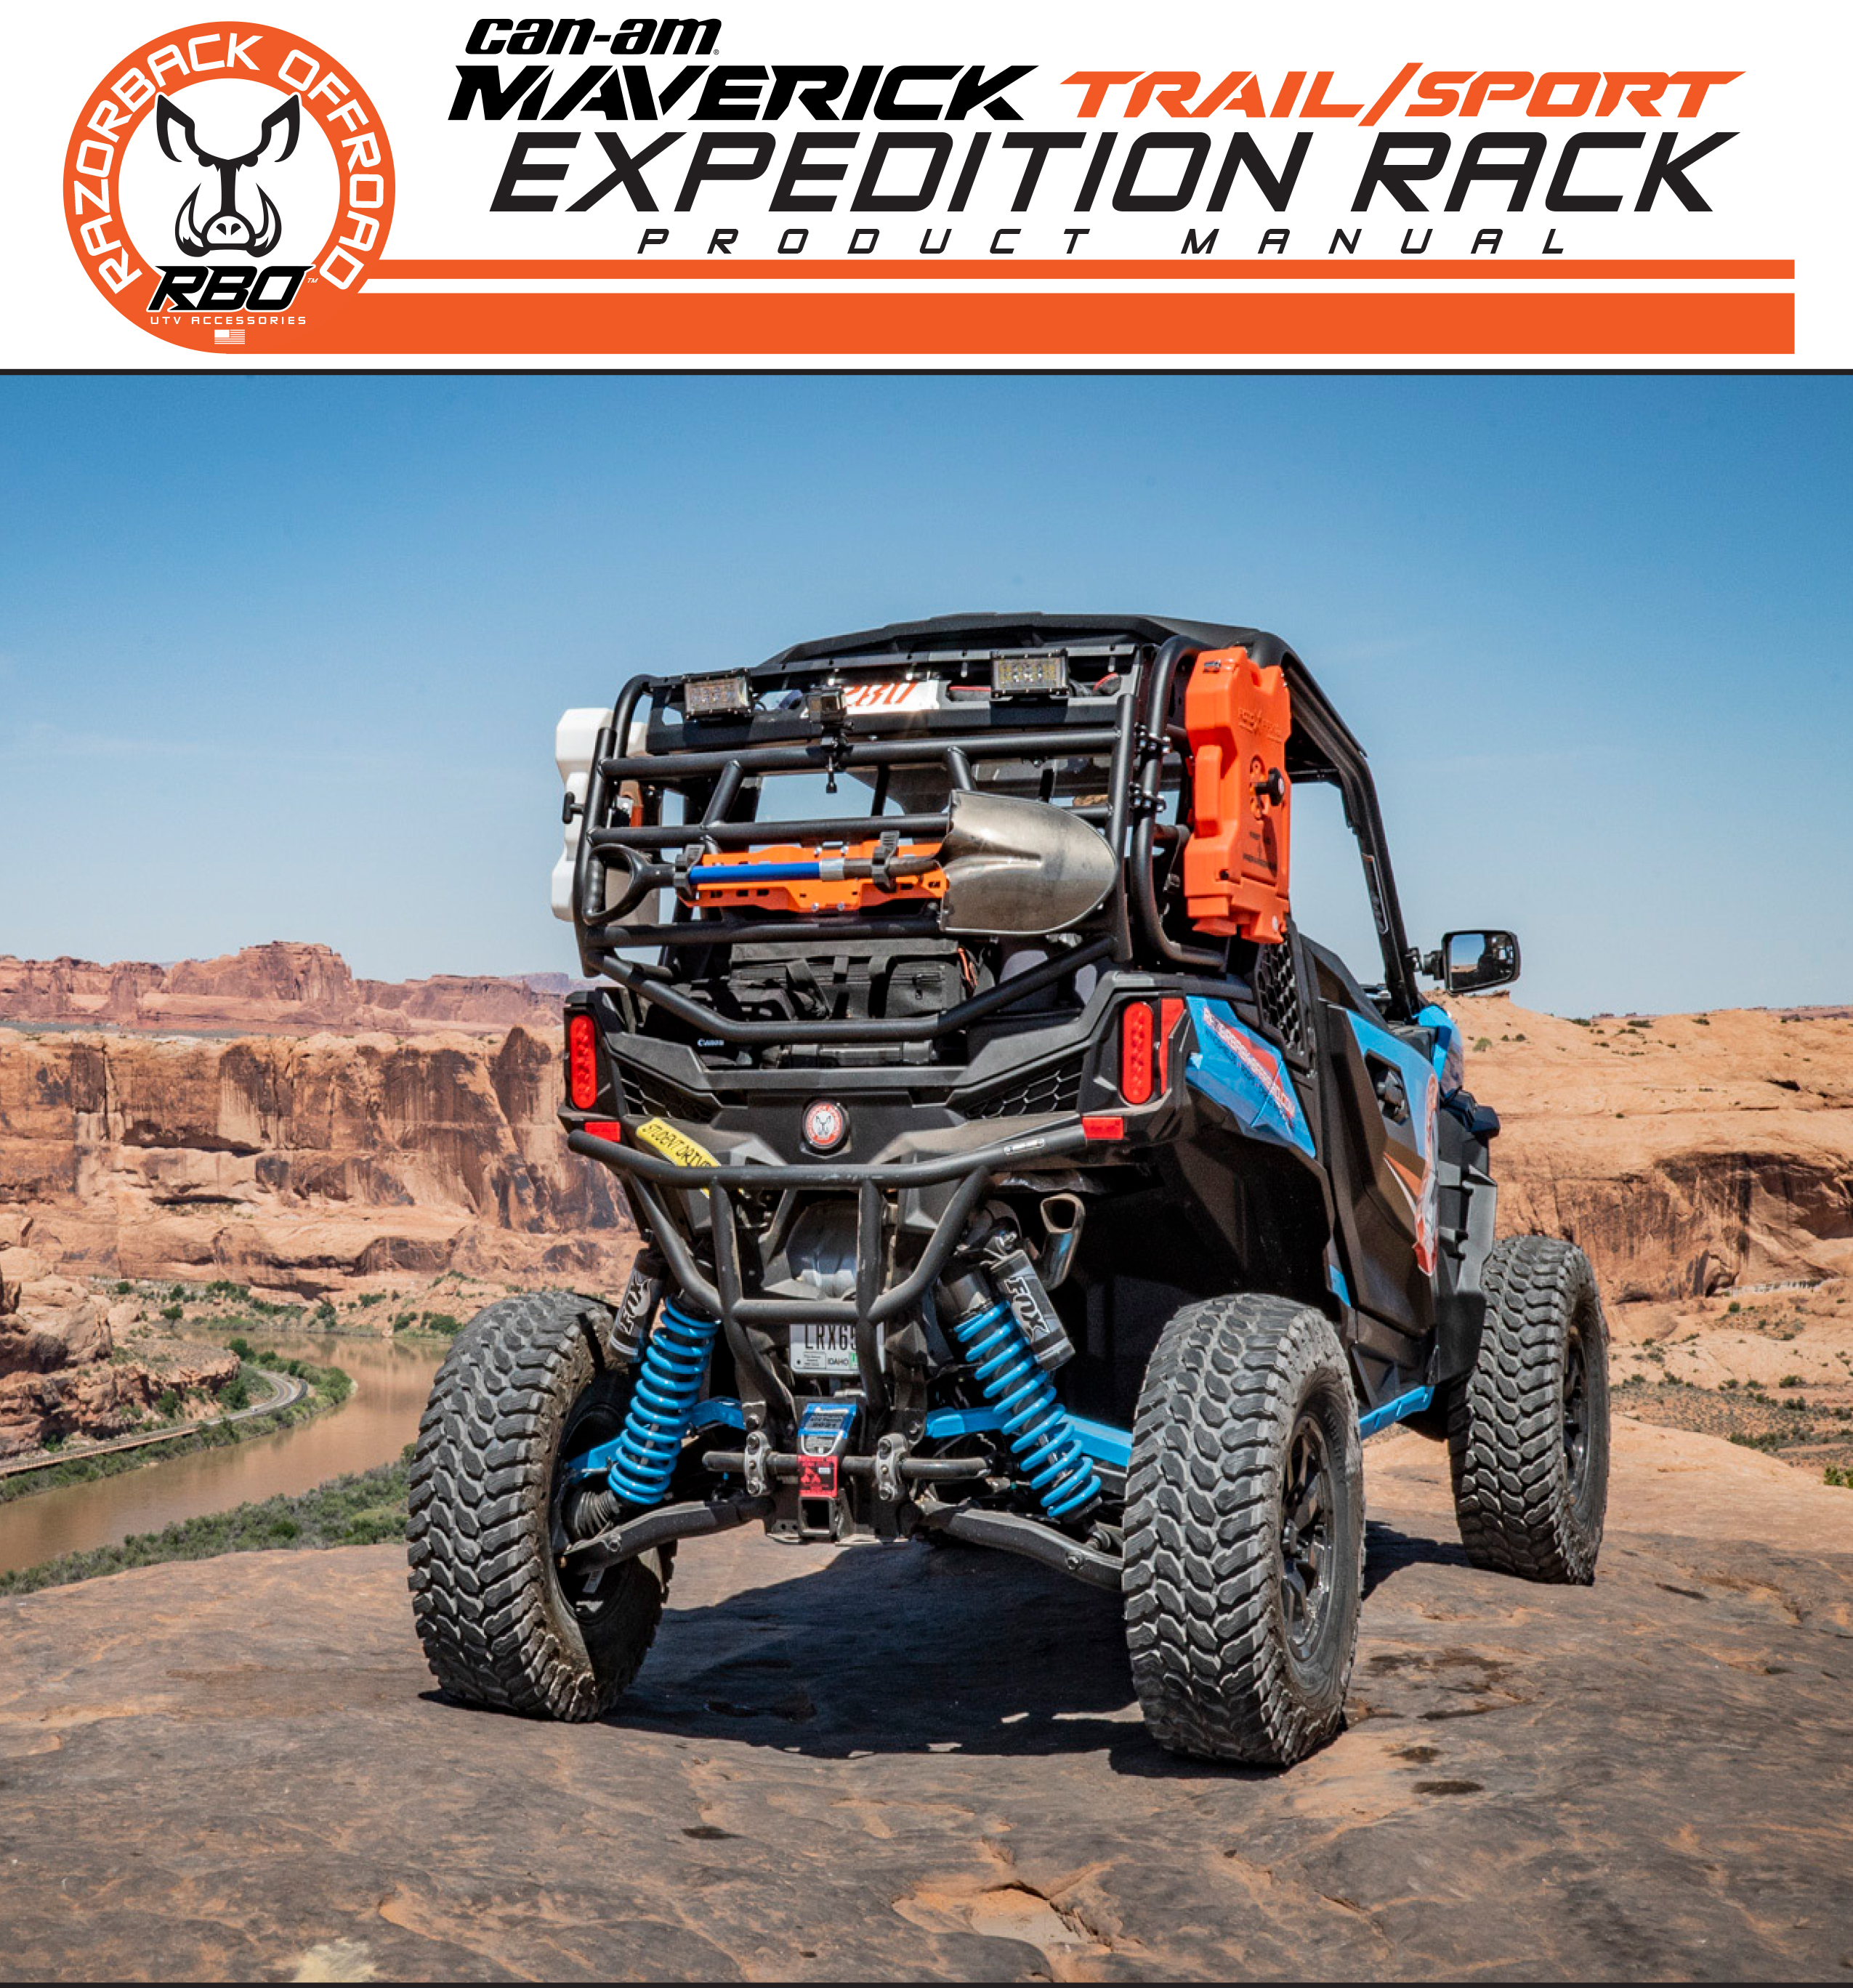 RBO Can-Am Maverick Trail and Sport Expedition Rack